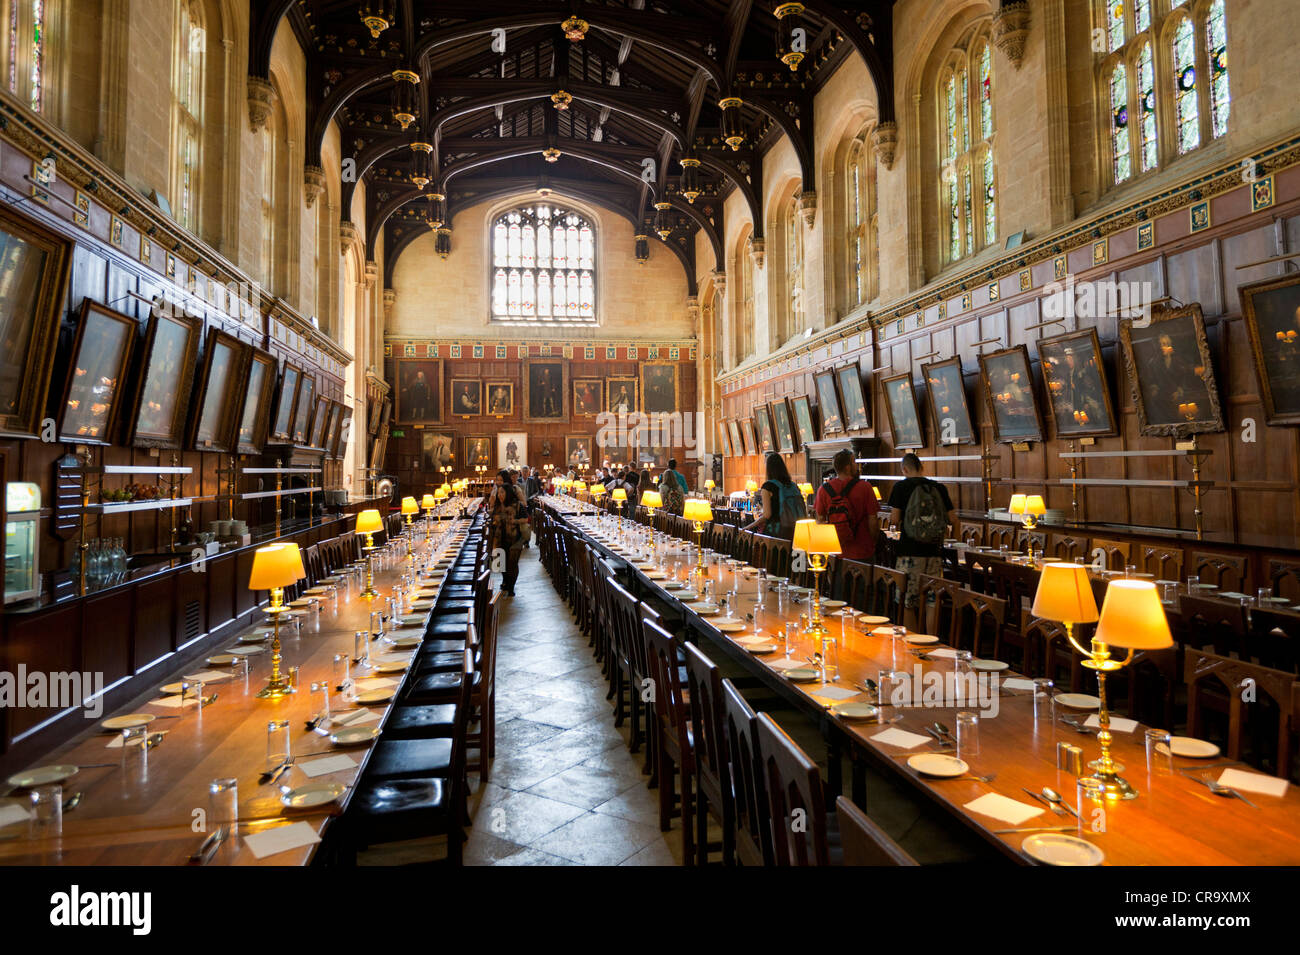 Christ Church college Grande salle à manger de l'Université d'Oxford Oxfordshire England UK GB Photo Stock